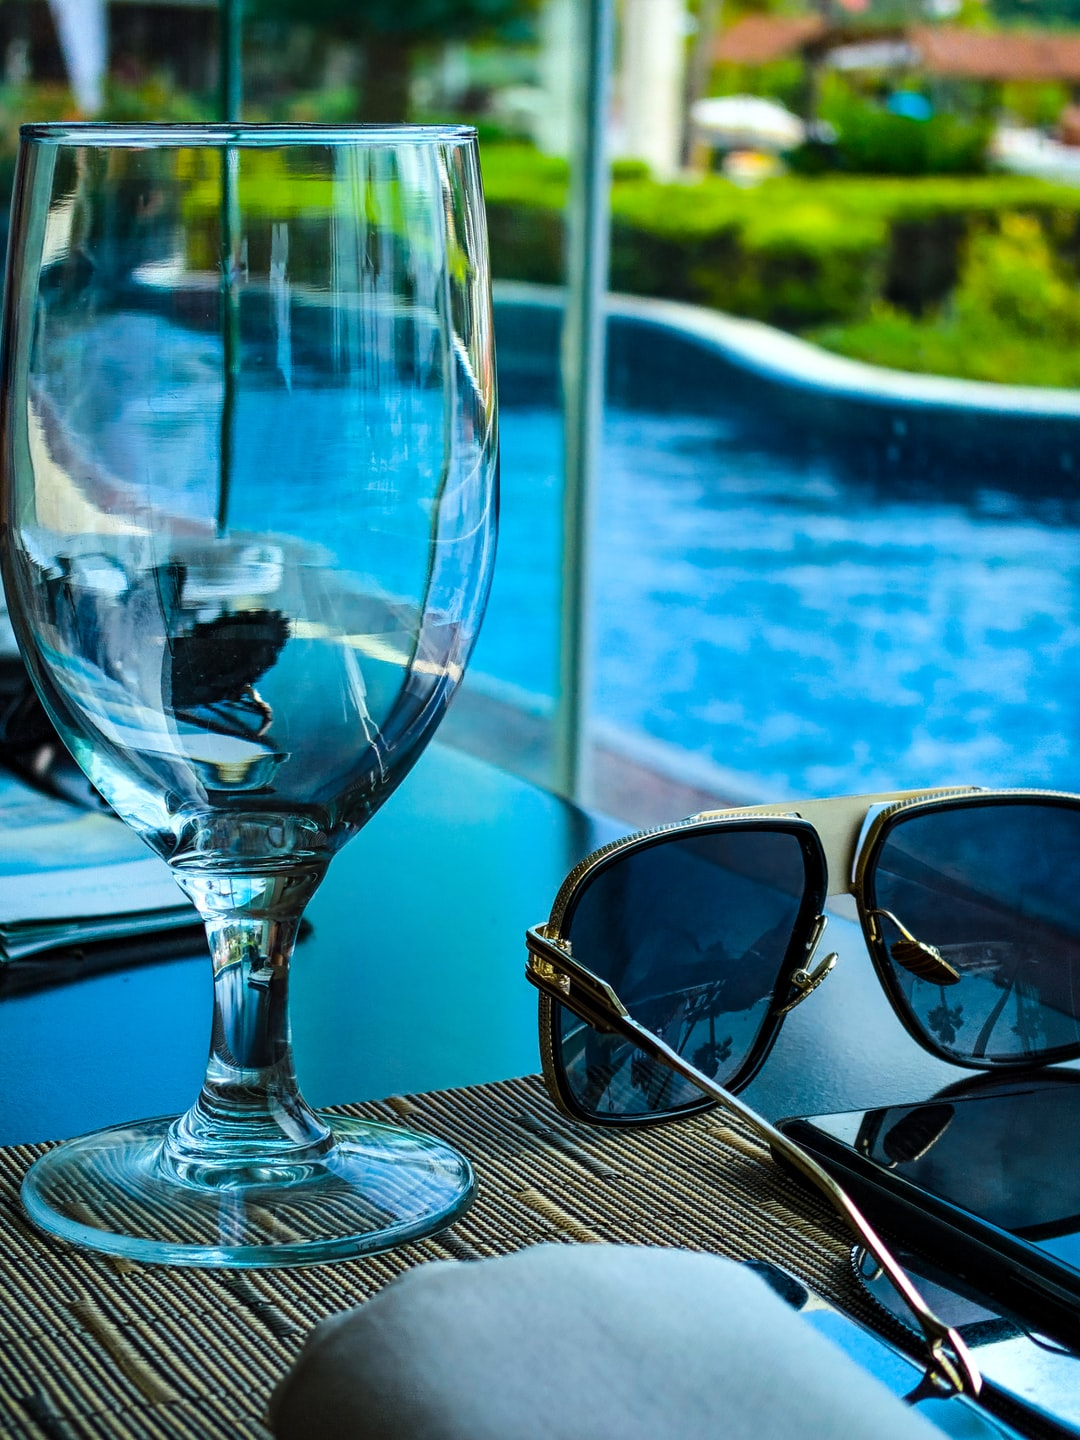 High fashion sunglasses, goblet and phone resting on a restaurant table. In front of a pool, grass and Palm trees.